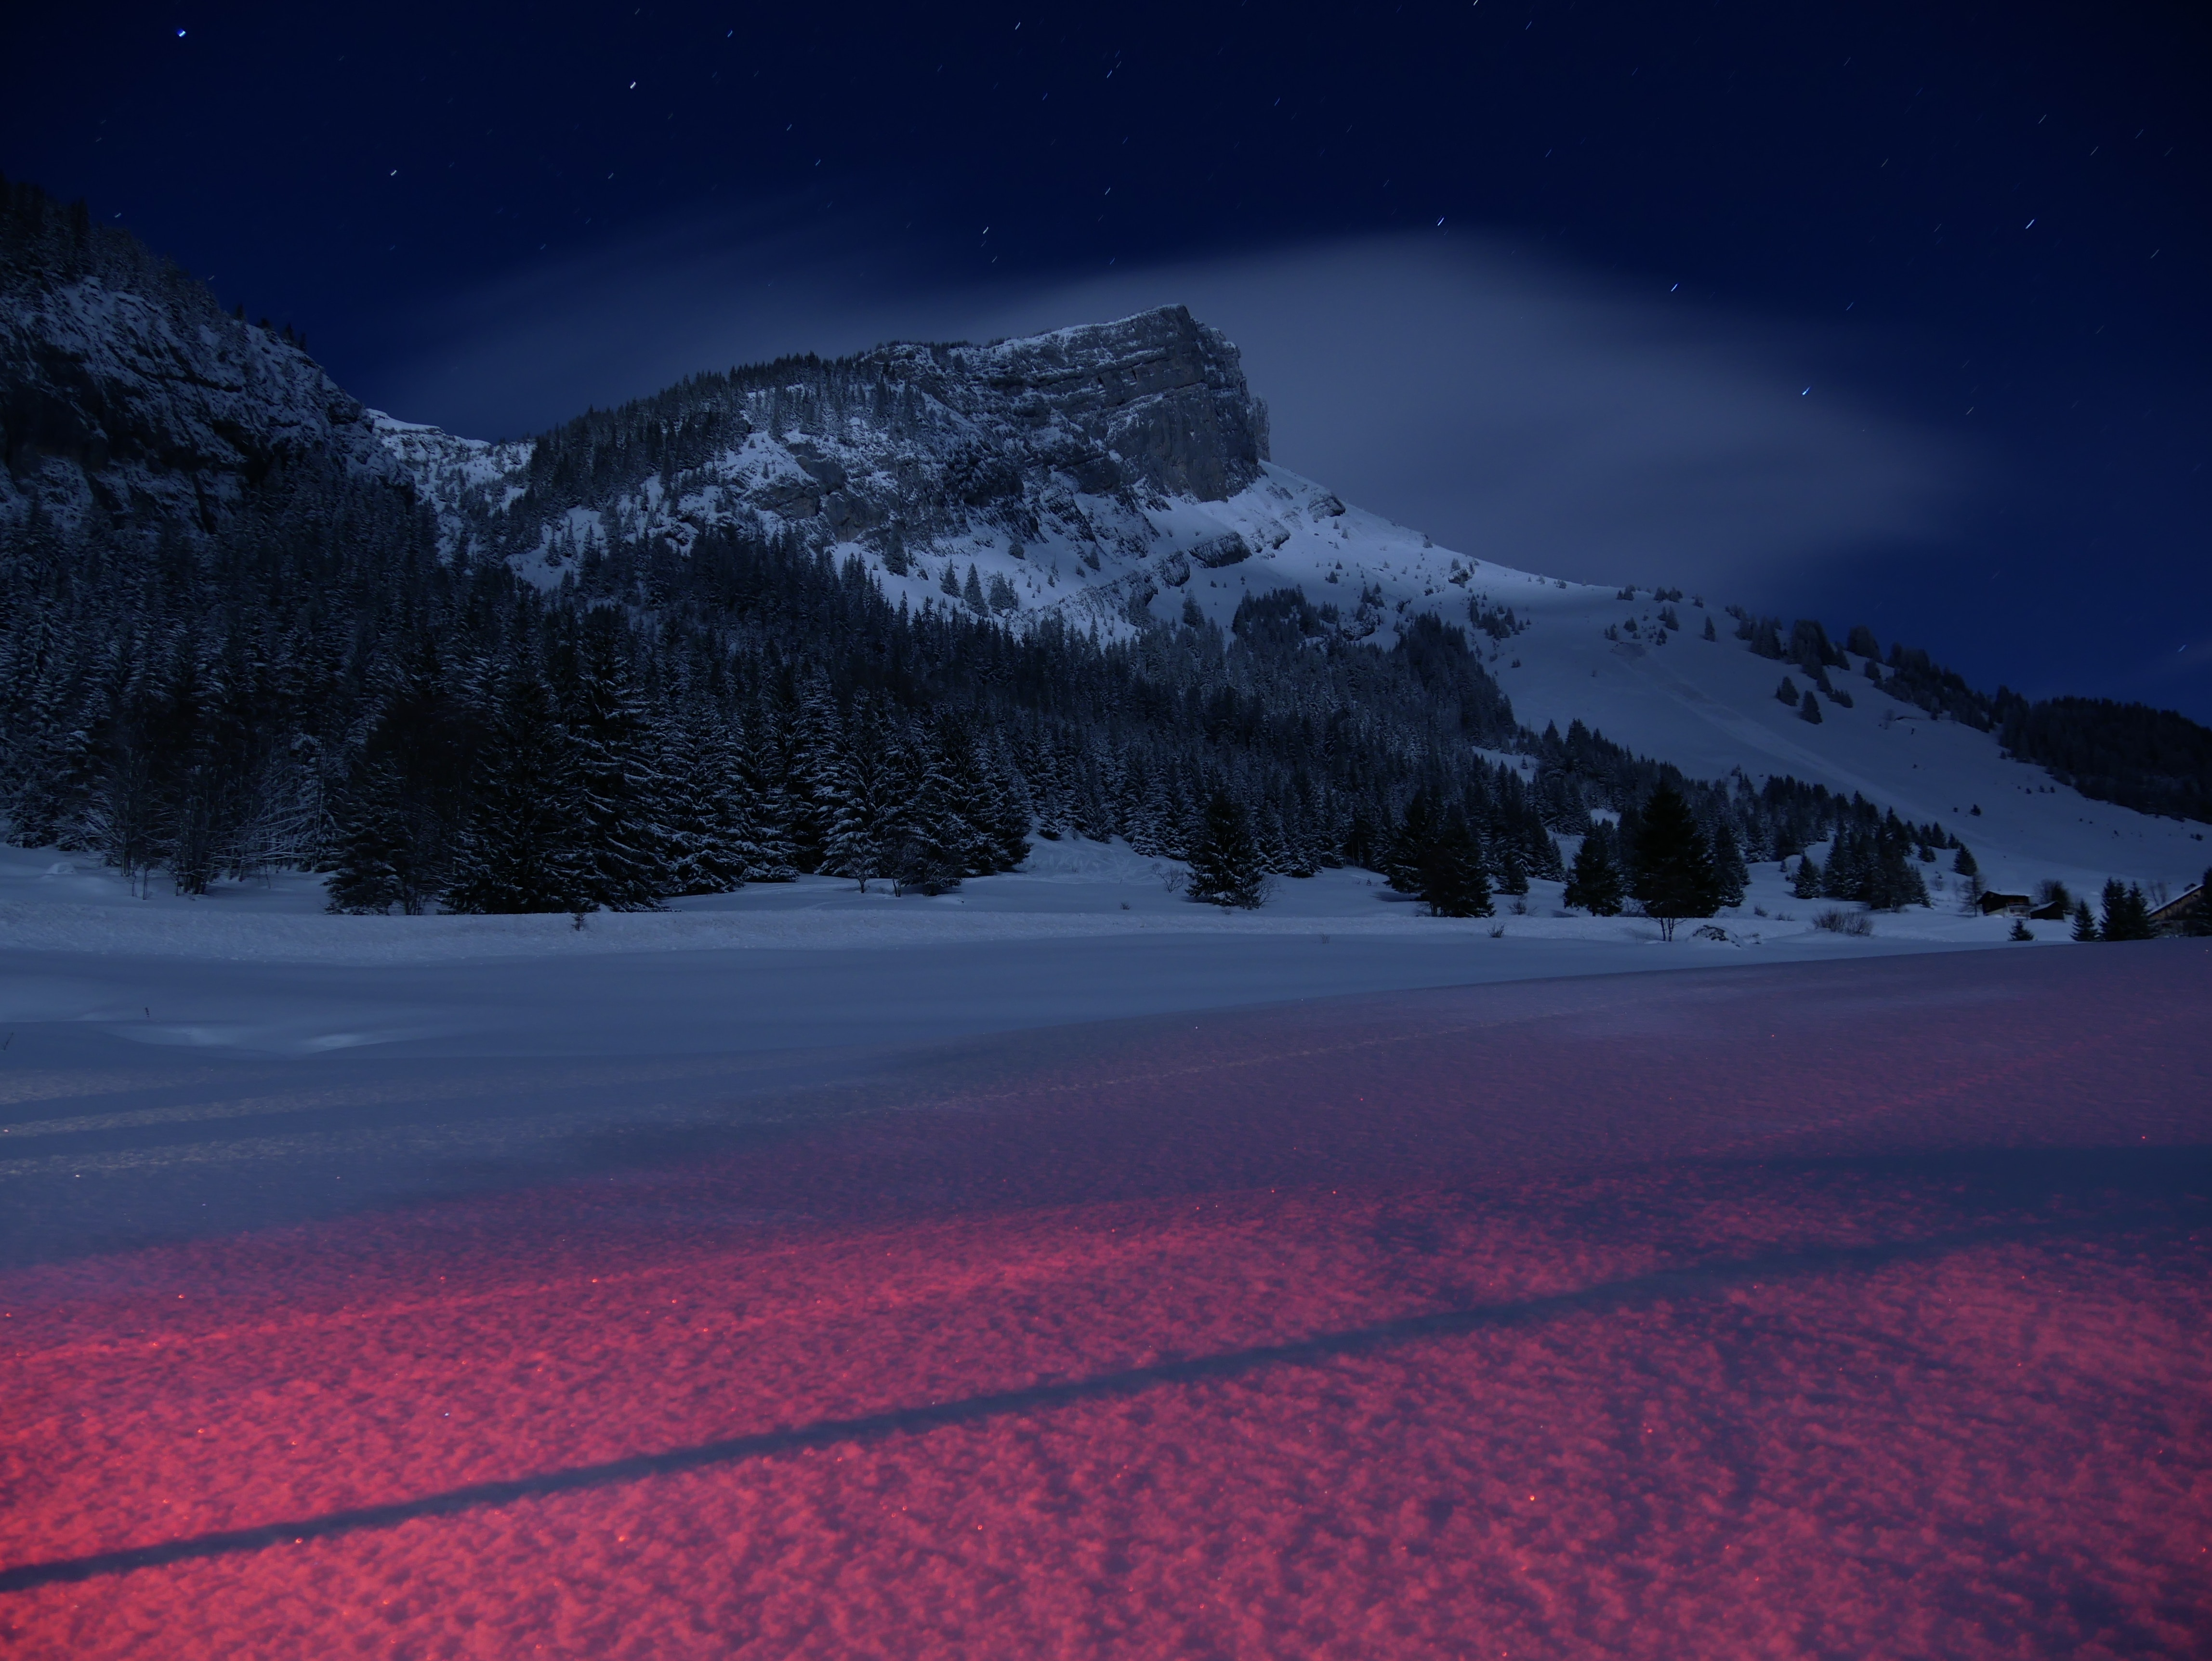 Mountains landscape night snow 5k hd nature 4k - Wallpapers 1280x800 nature ...